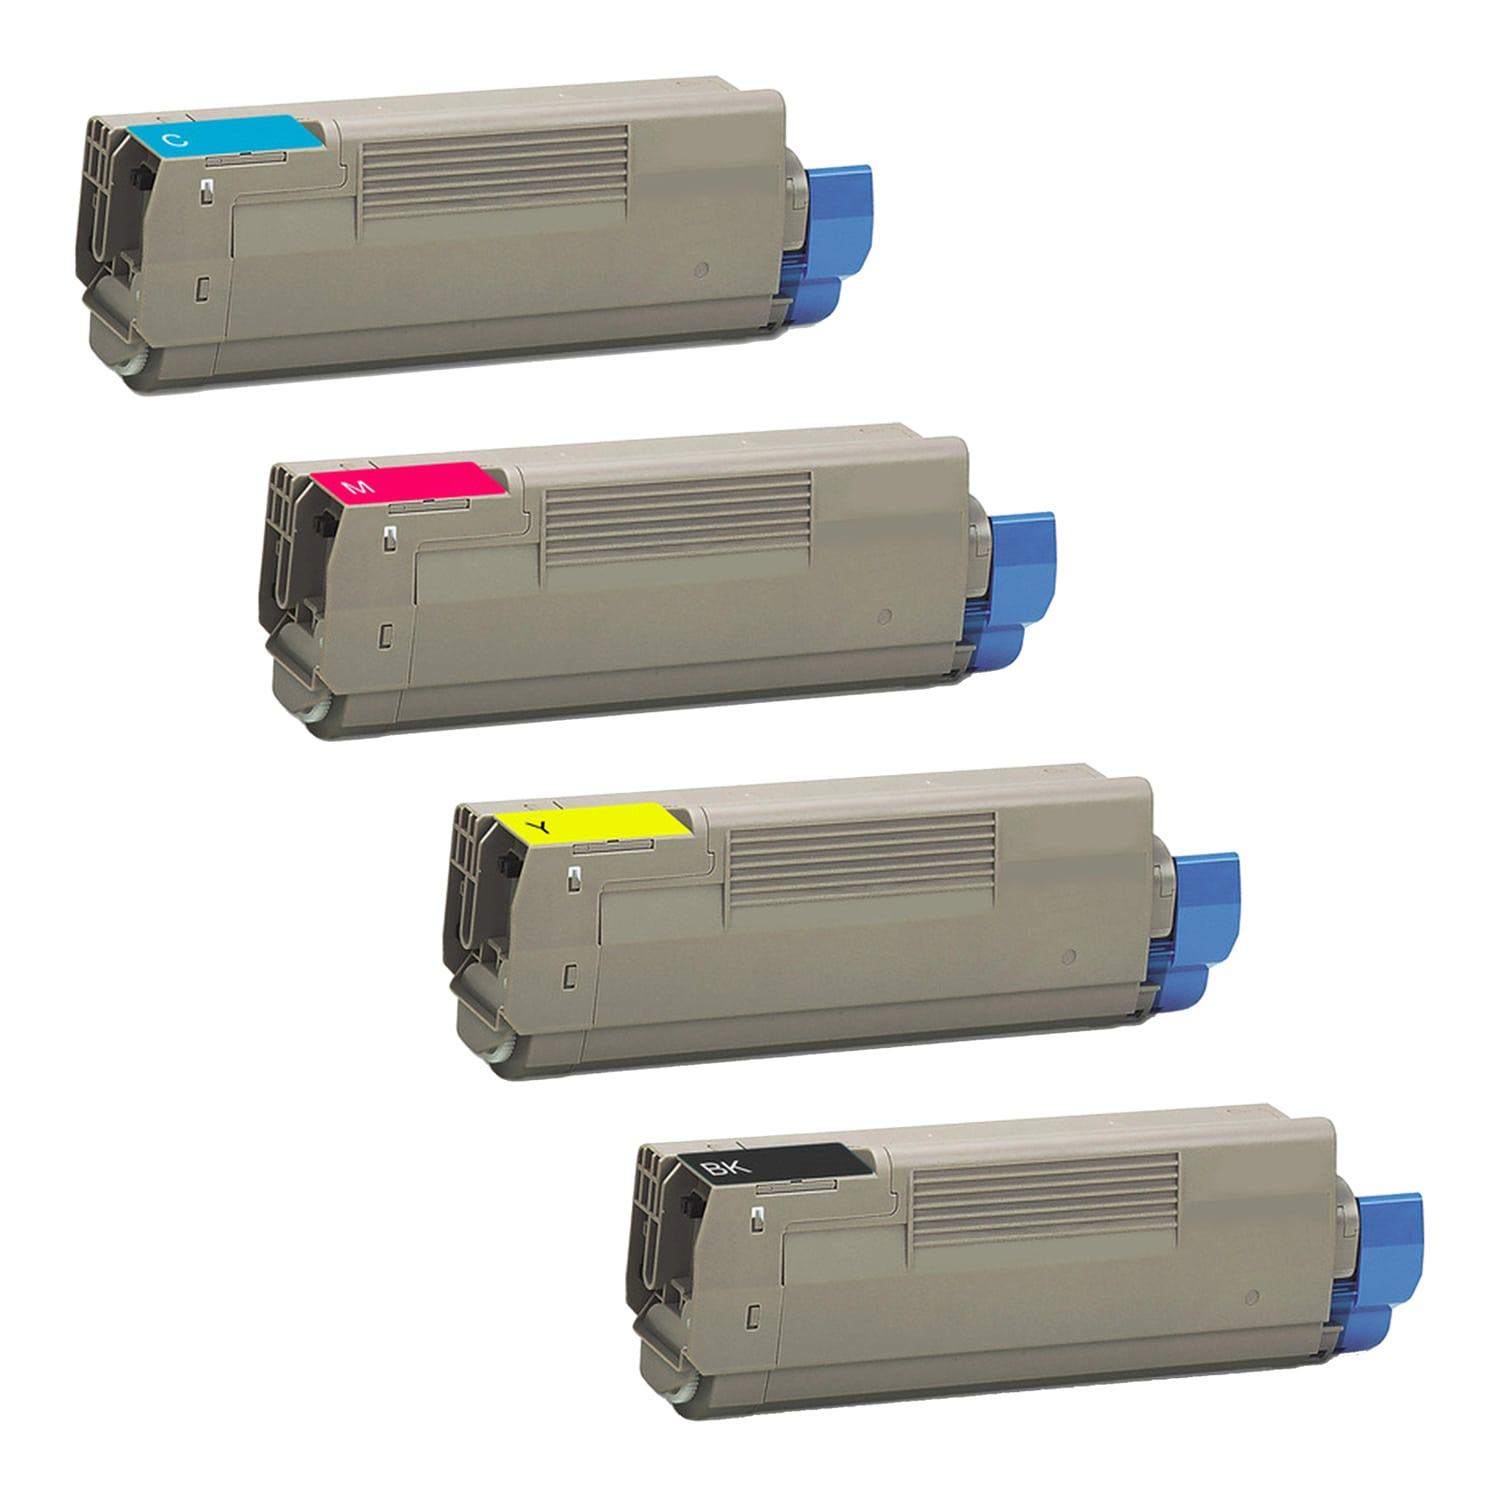 Remanufactured Okidata C831-MC873dn Toner Pack - 4 Cartridges